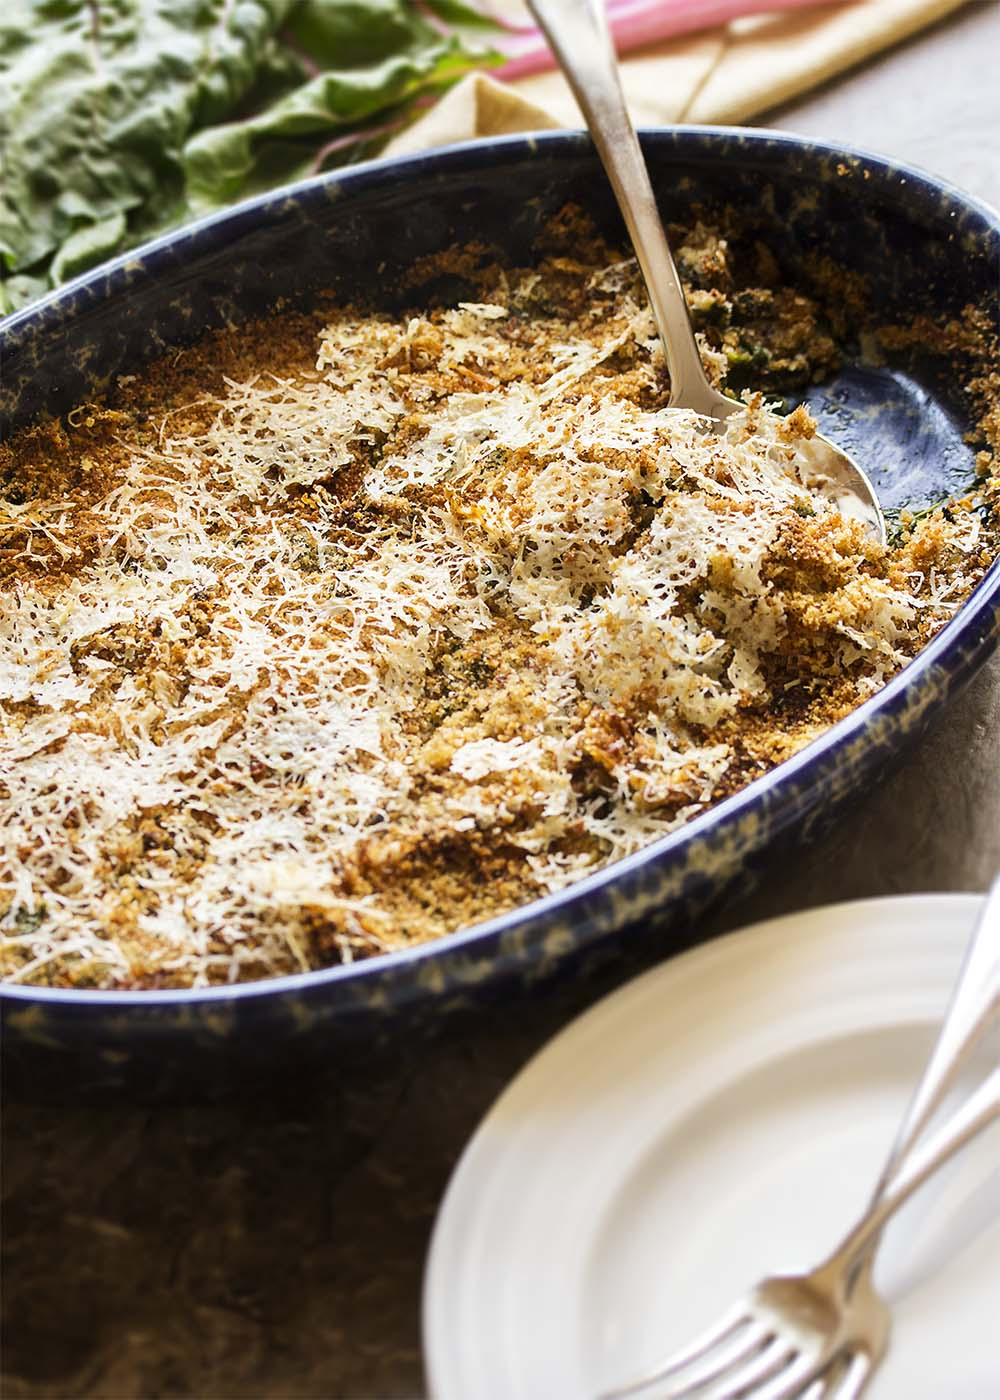 Easy Swiss Chard Gratin - This easy chard gratin is all about the greens as they are cooked in milk and then topped with breadcrumbs and a handful of parmesan. This a great gratin for when you have more greens than you know what to do with - chard, kale, turnip greens, beet greens, spinach. Try a mix of different greens!   justalittlebitofbacon.com